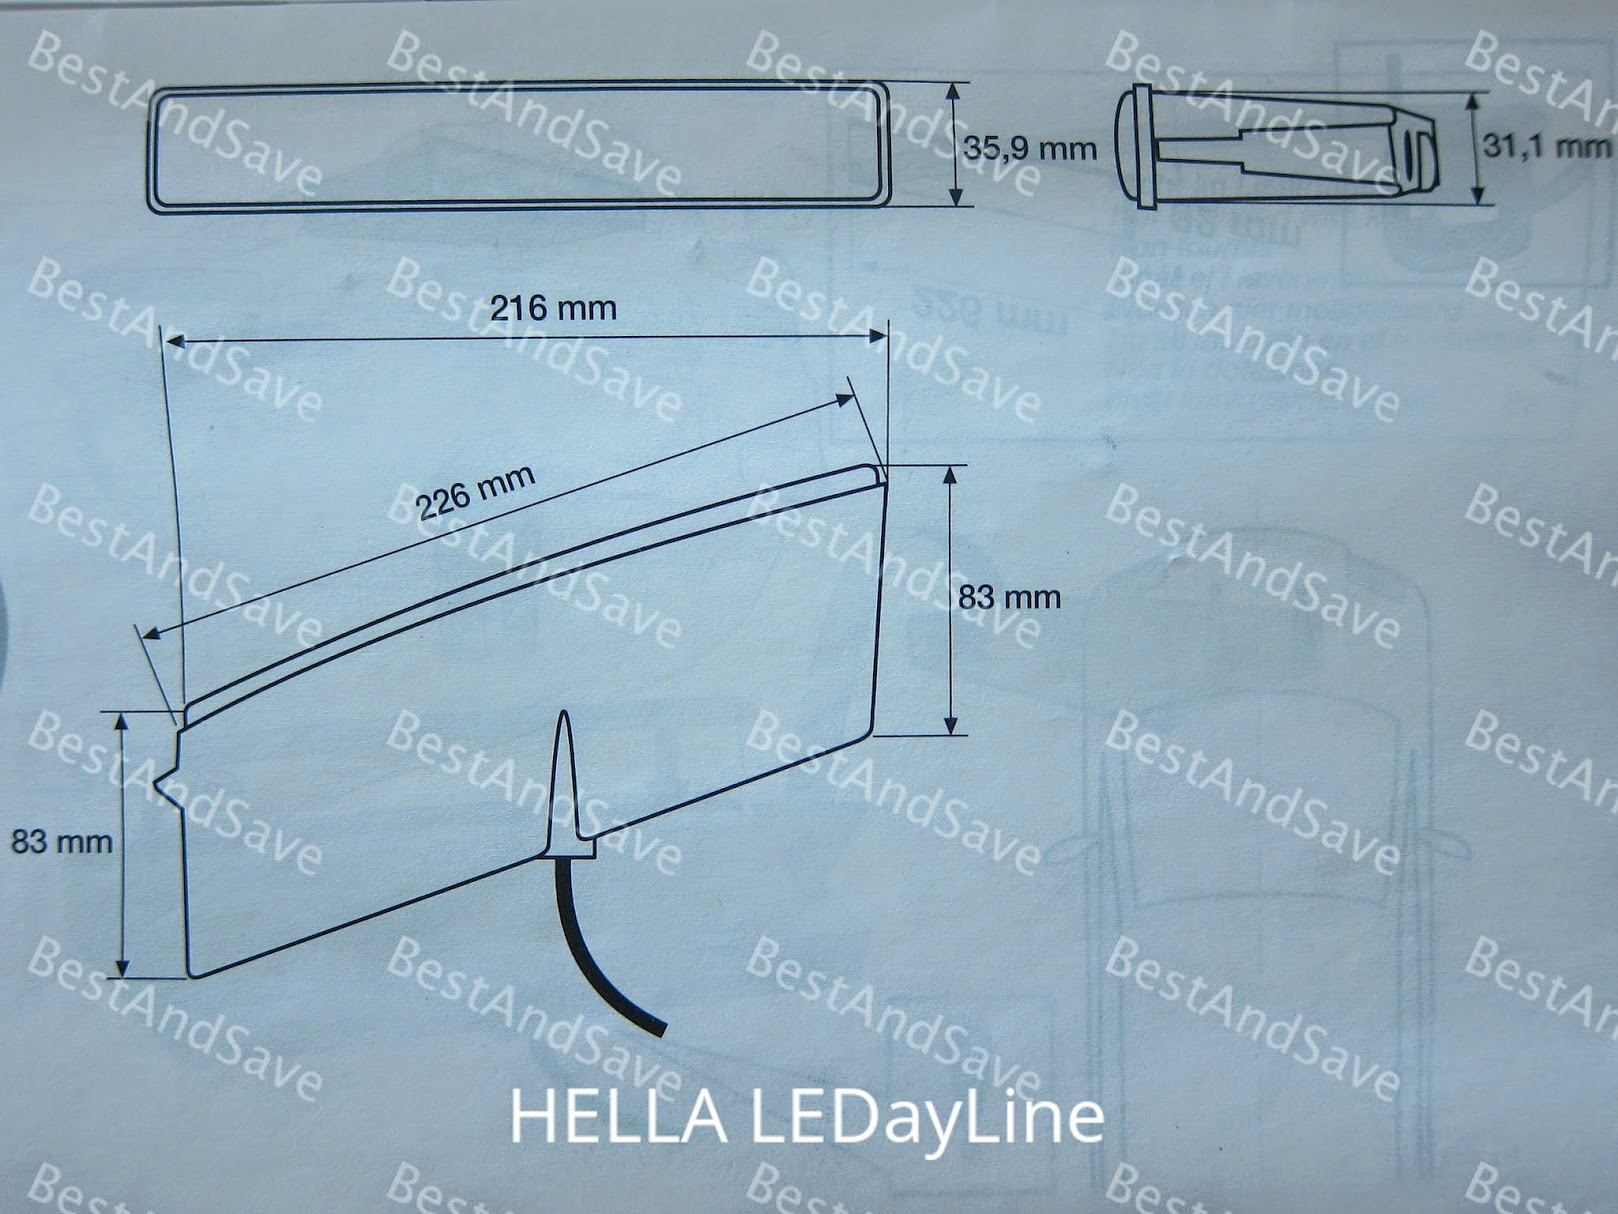 Hella Ledayline Led Daytime Running End 7 21 2017 515 Pm Wiring Harness 1 Control Unit And Universal Mounting Hardware Step By Instructions